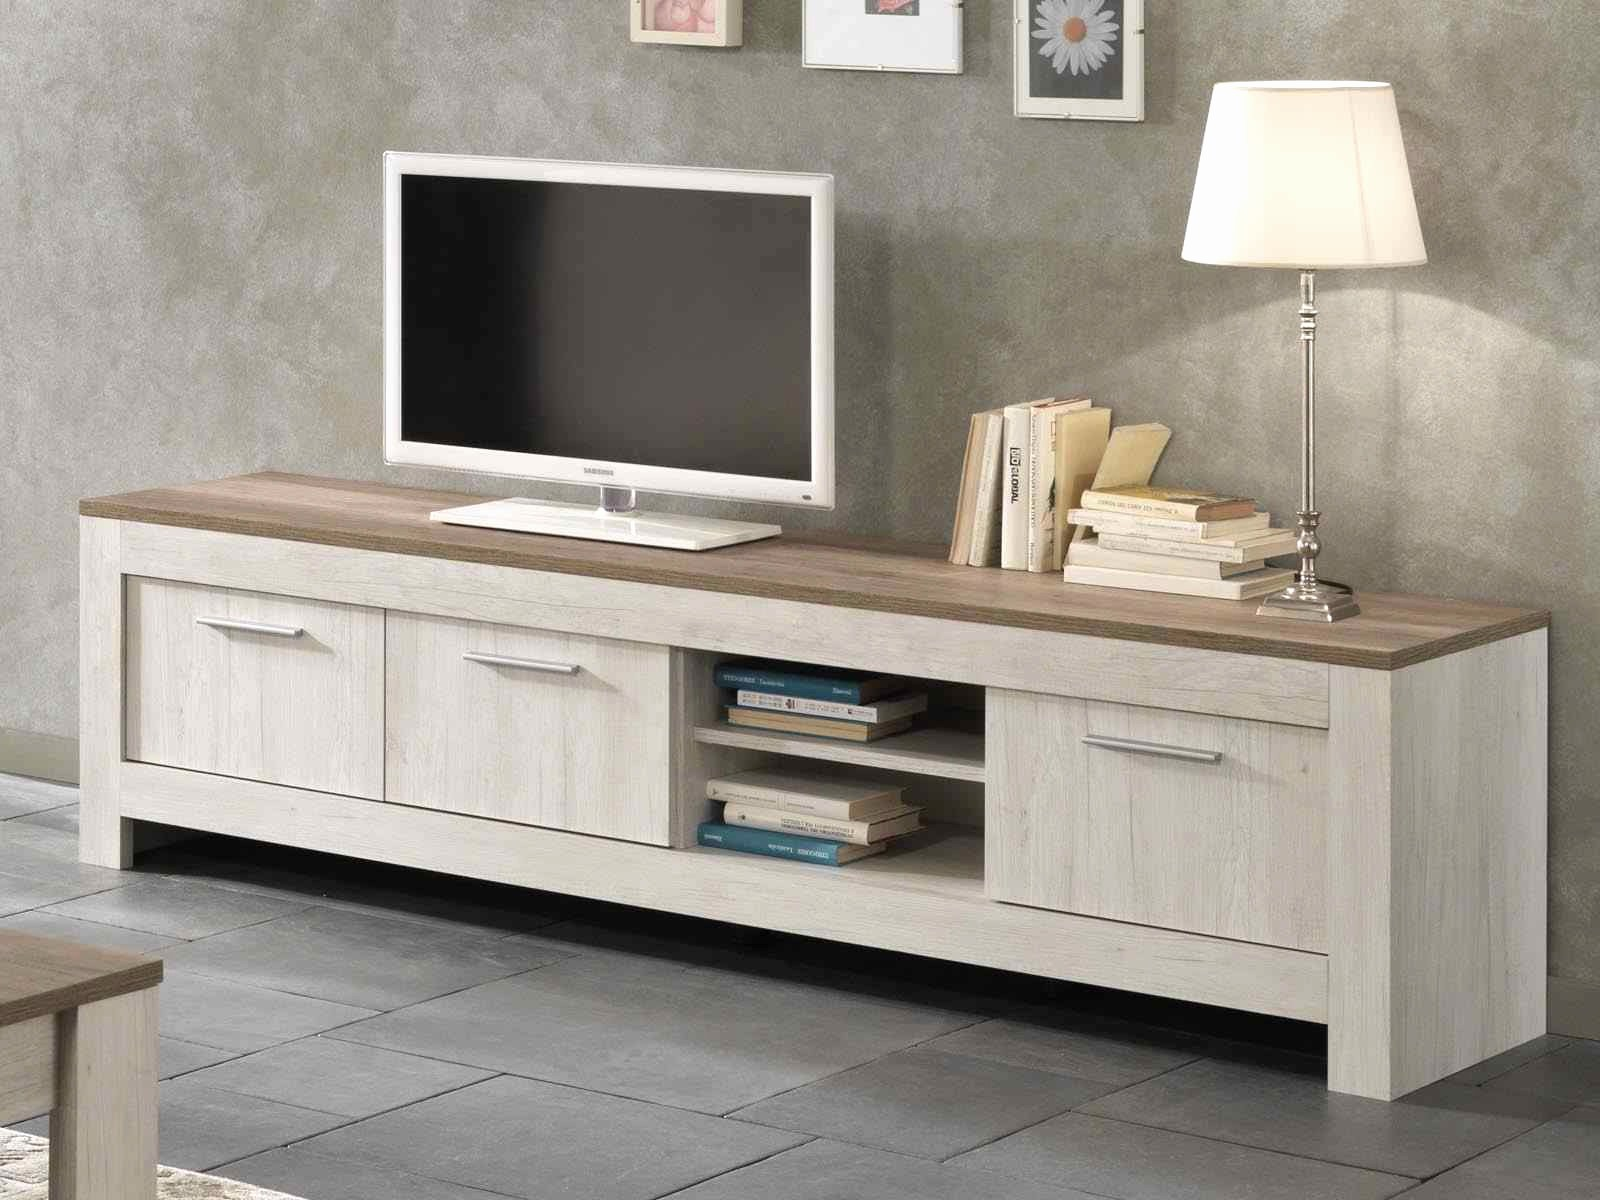 Meuble tv porte coulissante fly